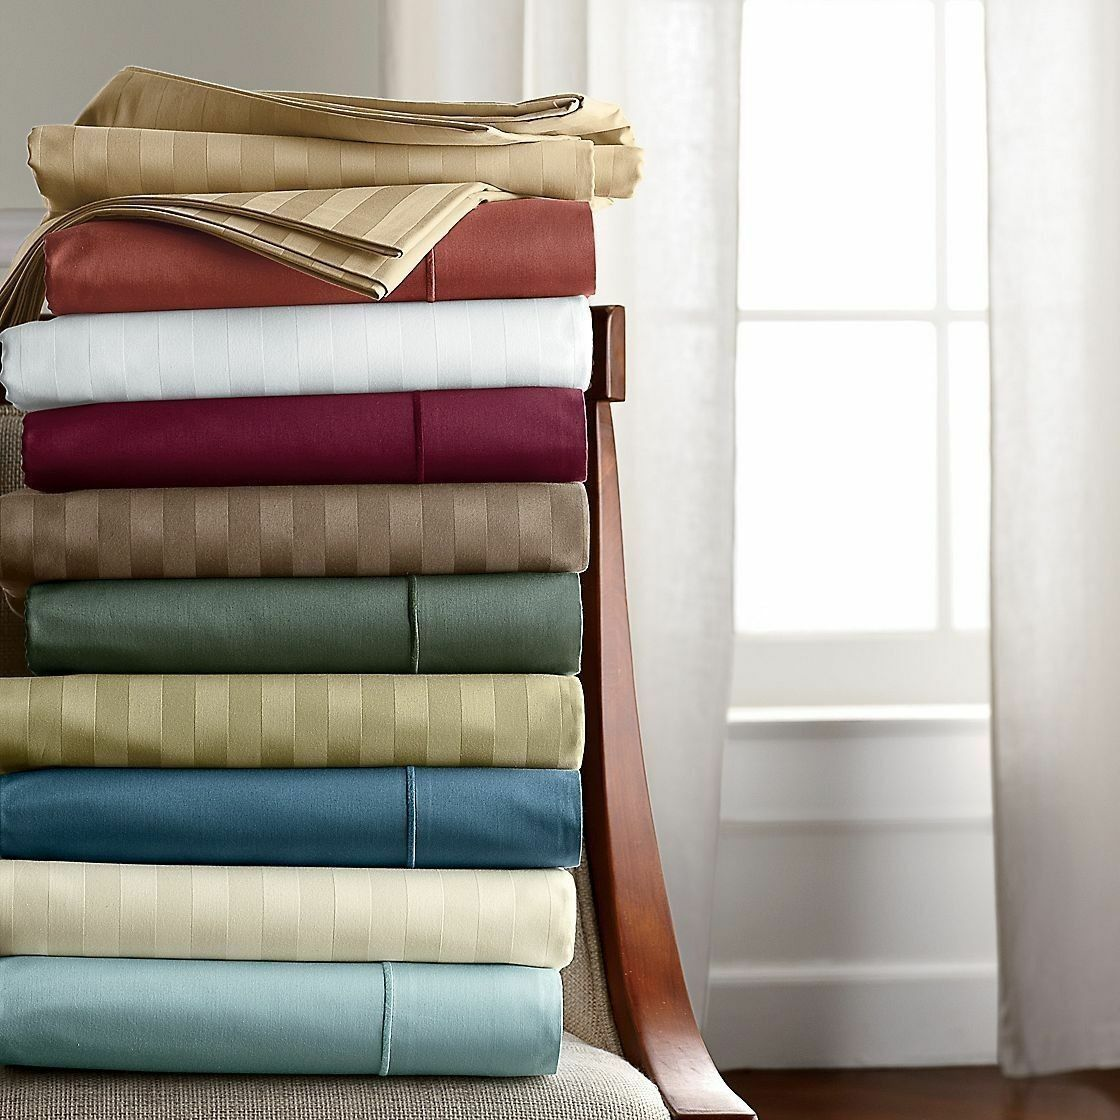 1000 Count Egyptian Cotton 3 PCs Fitted Sheet Set US Twin XL Size Multi colors